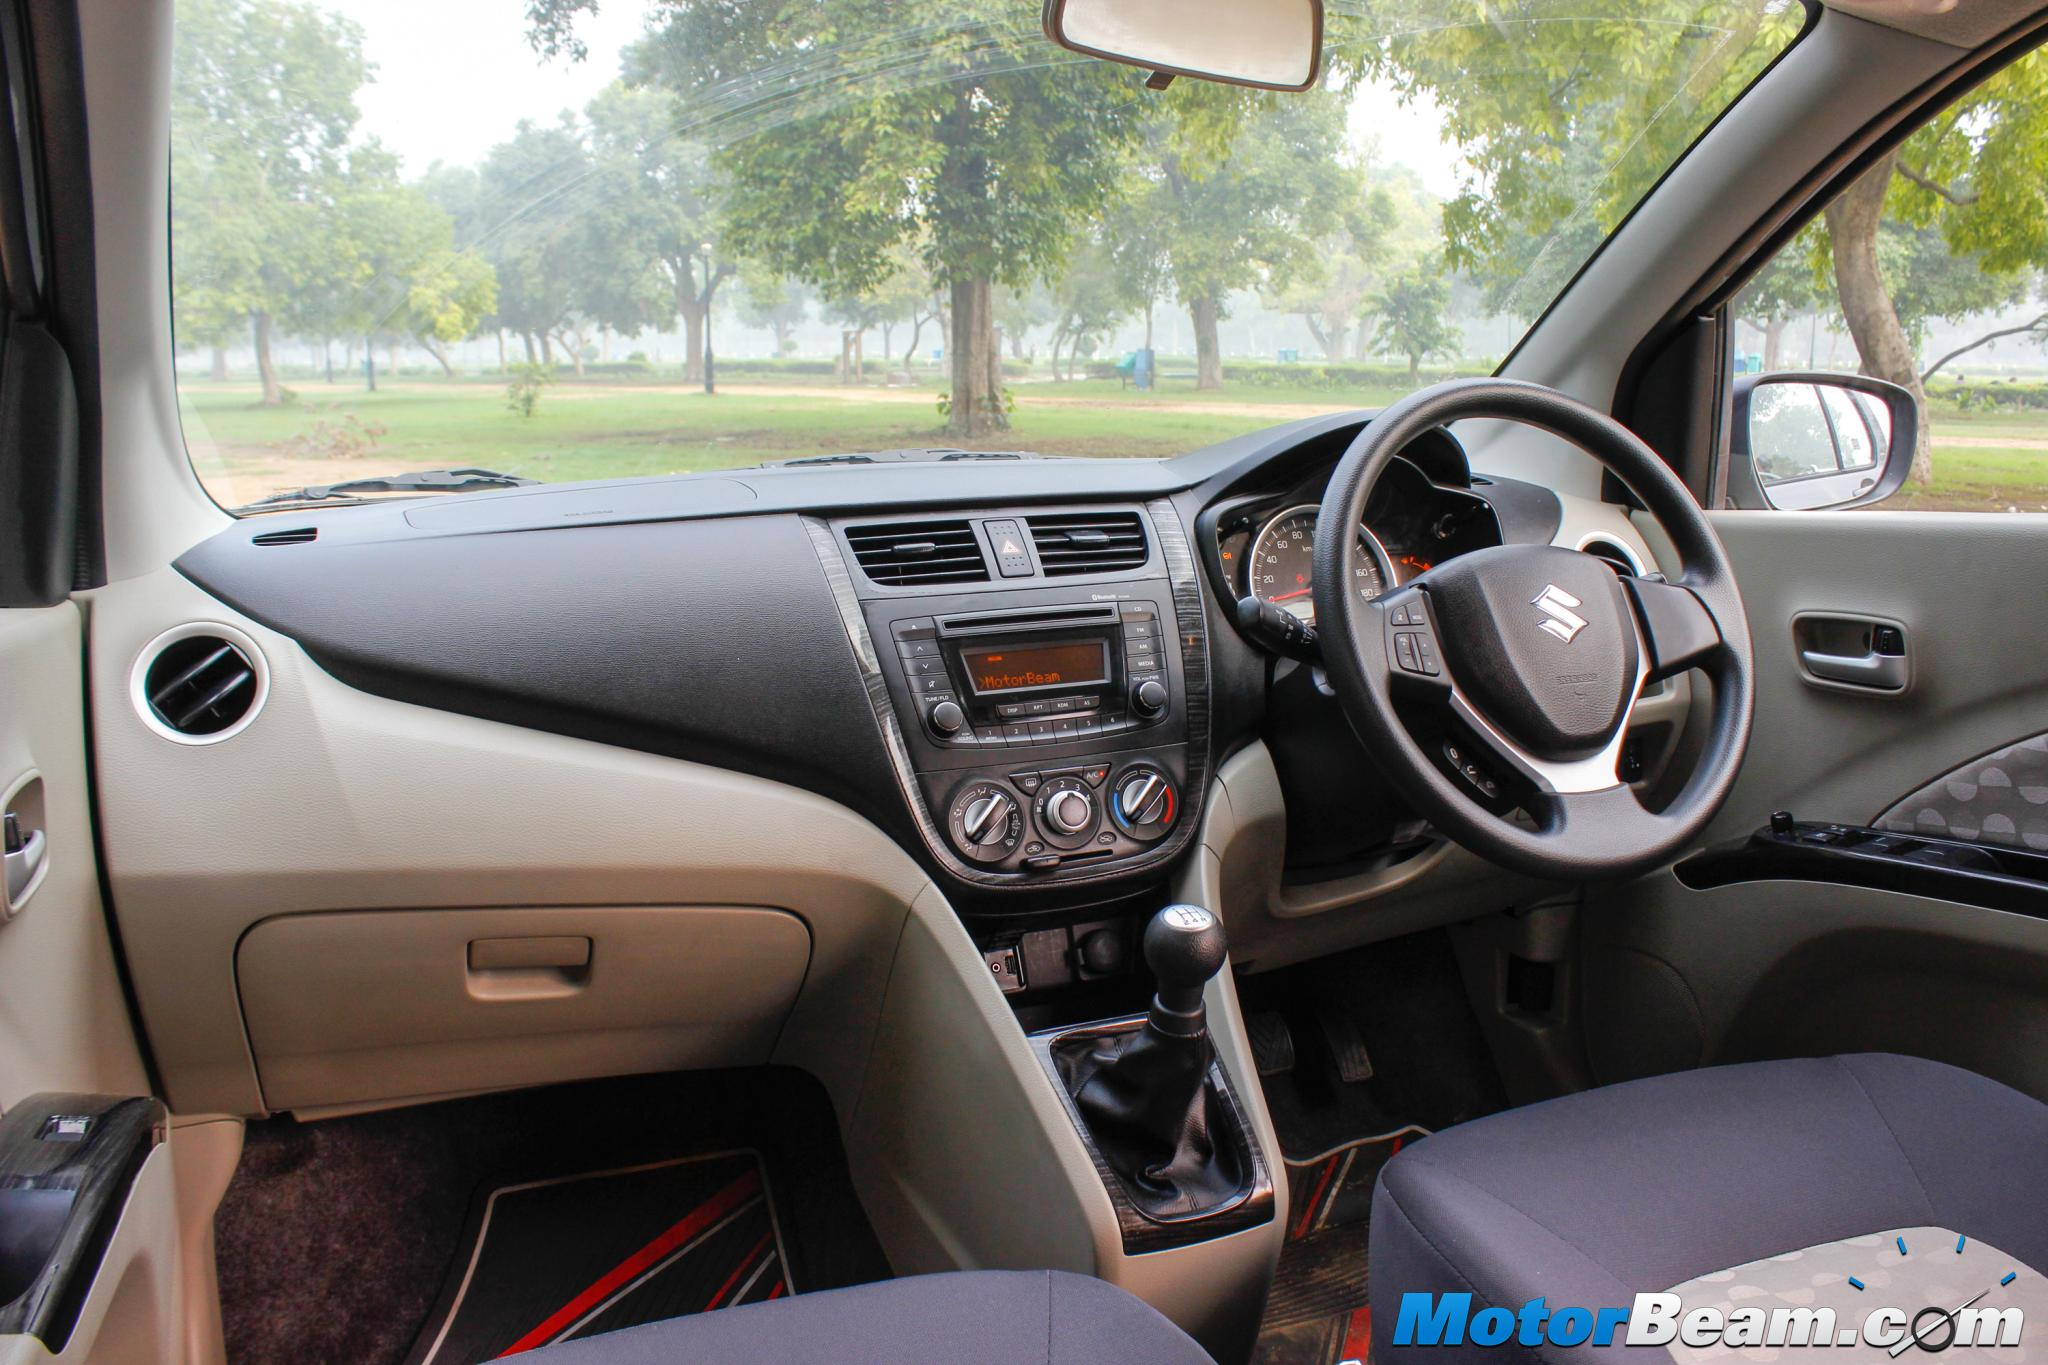 Maruti Celerio vs Hyundai Grand i10 Review